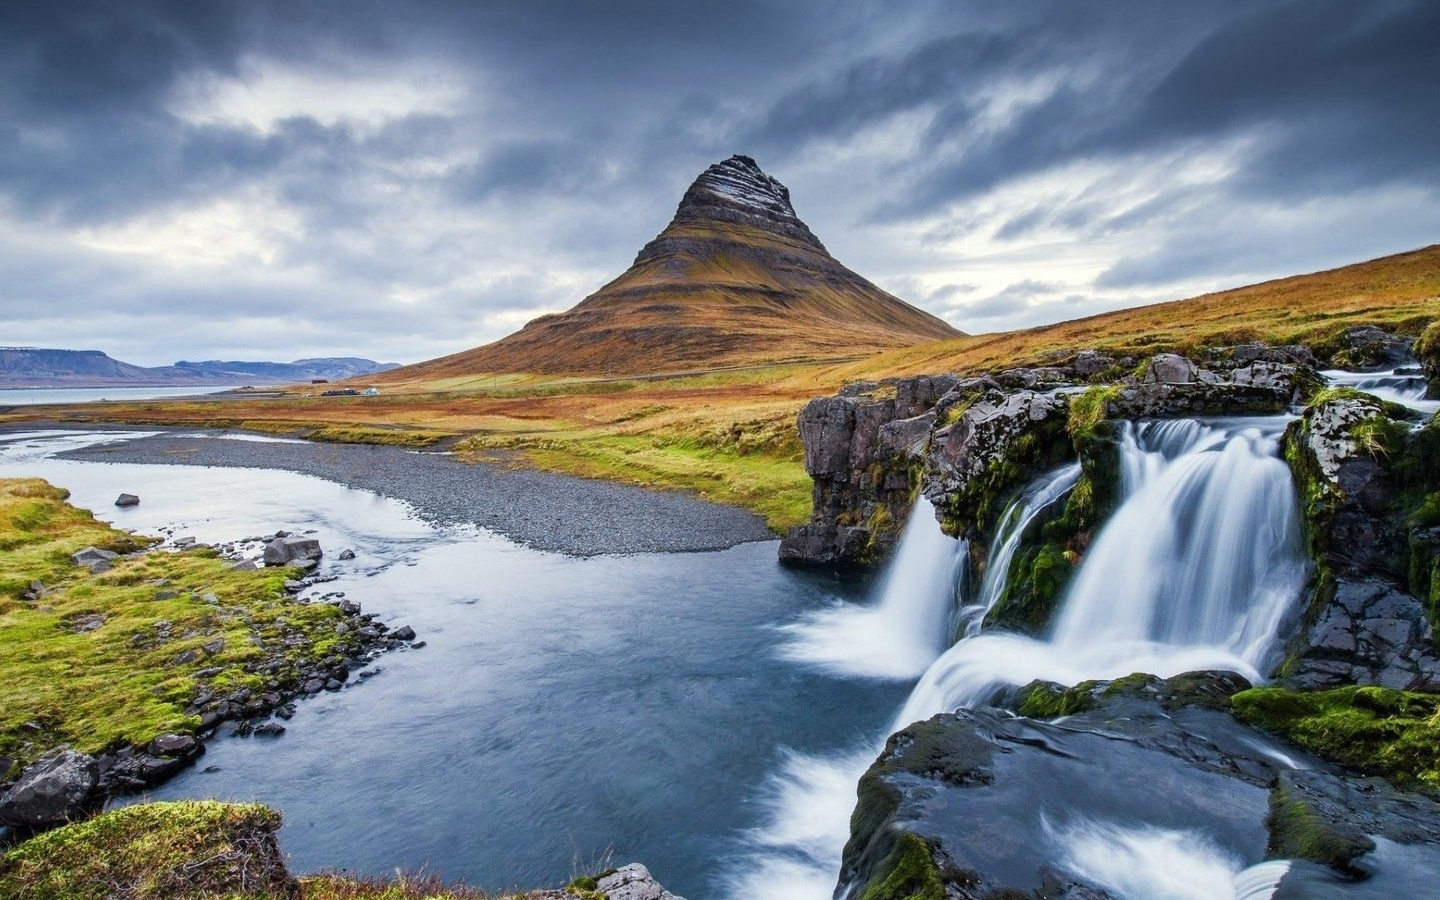 landscape, nature, mountains, river, waterfall